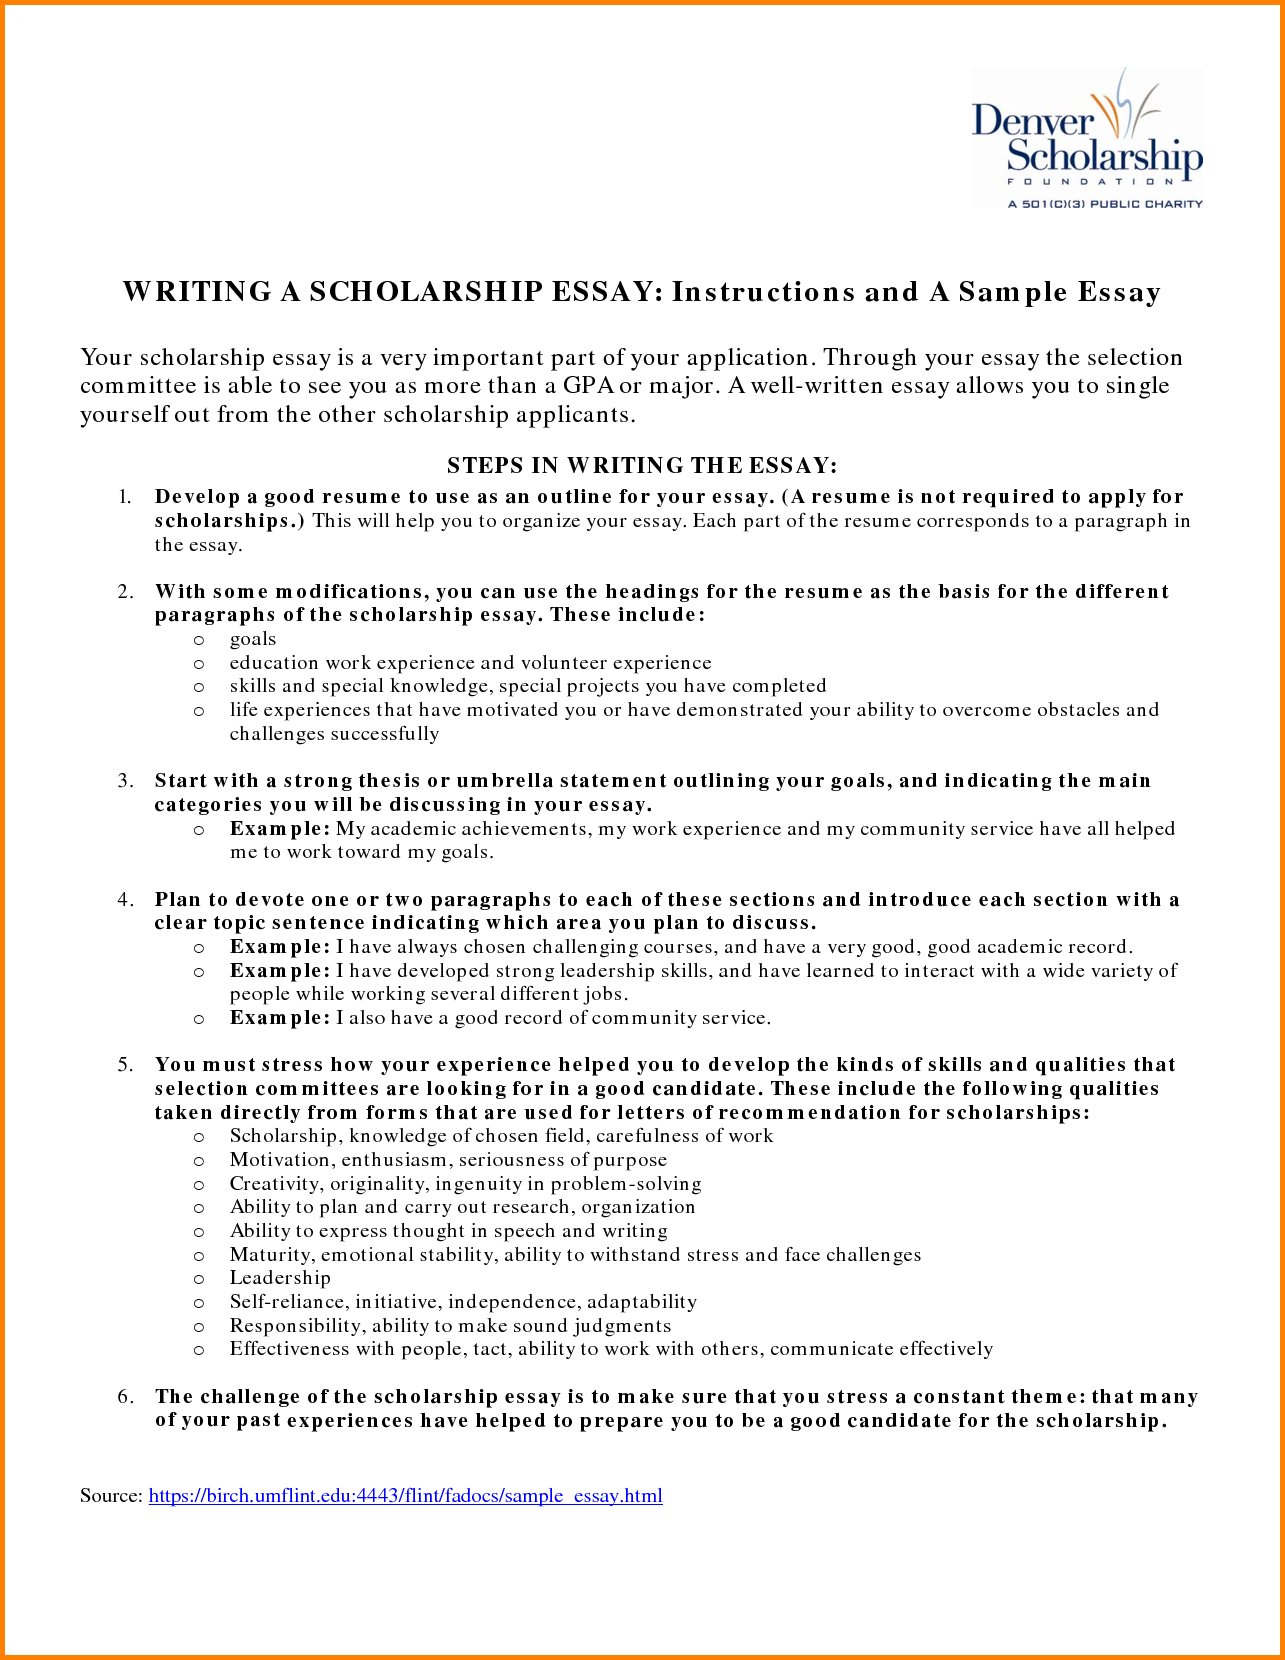 009 Essay Example Fair Resume Examples For Scholarships In Scholarship Sample Of Awful Essays Nursing Why I Deserve High School Seniors Full